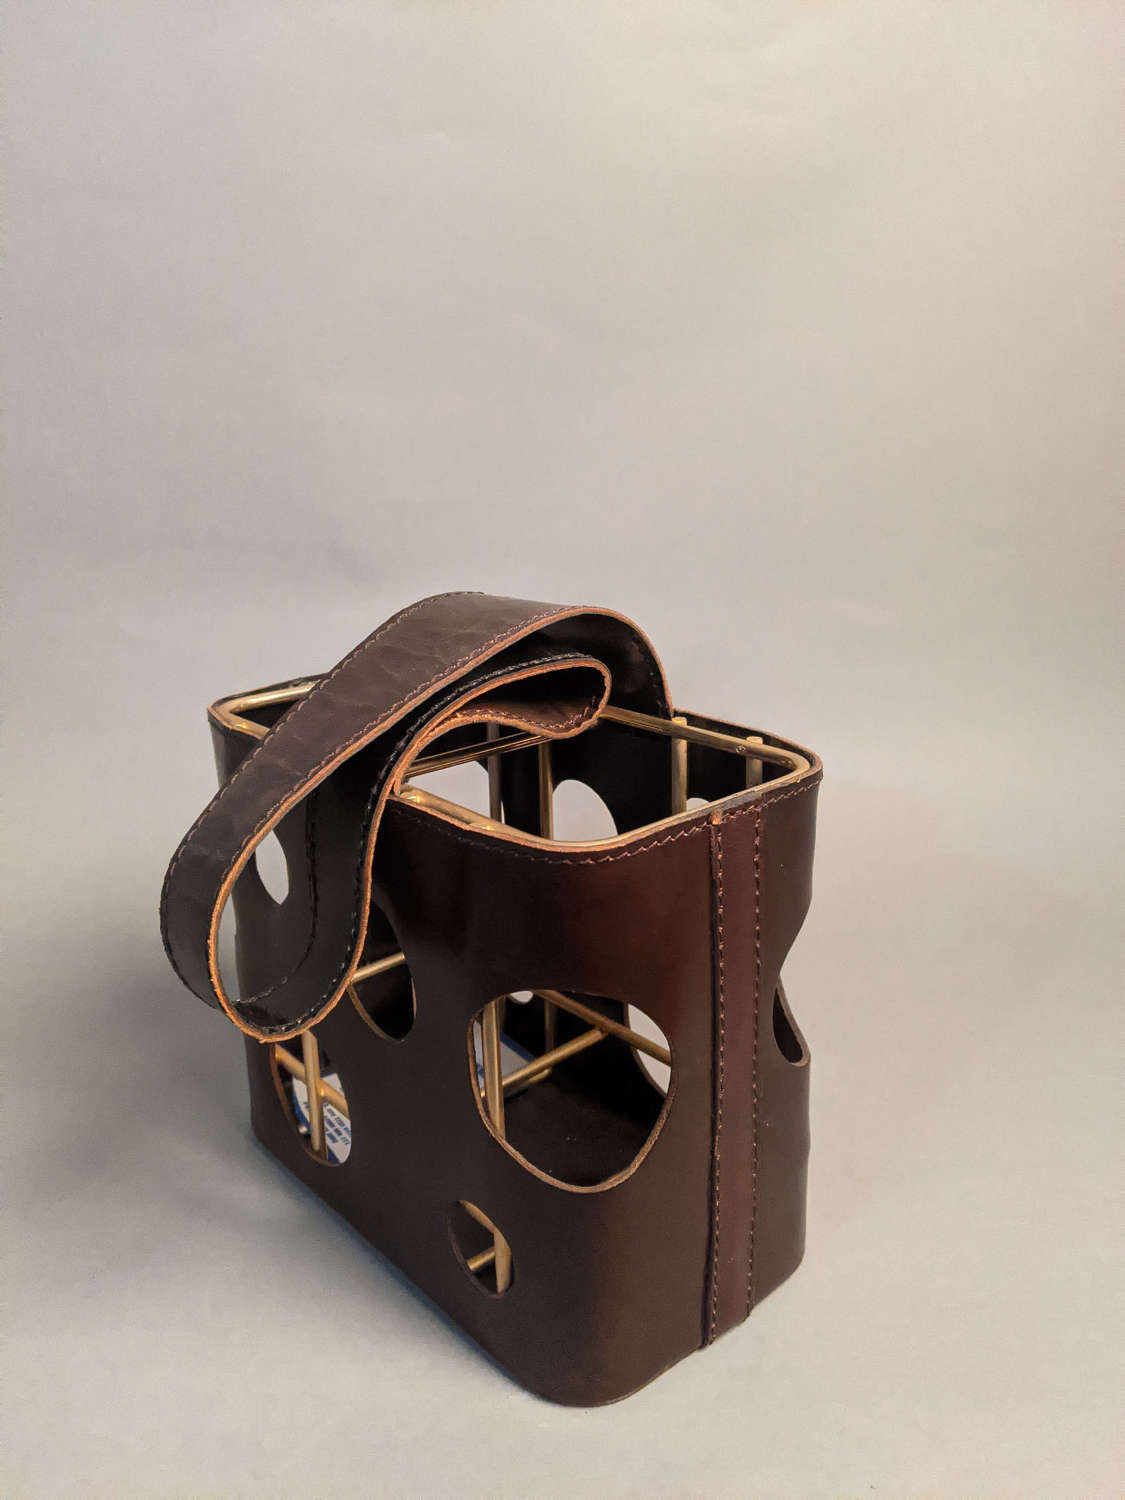 Leather bottle carrier by Jacques Adnet for JF Martell